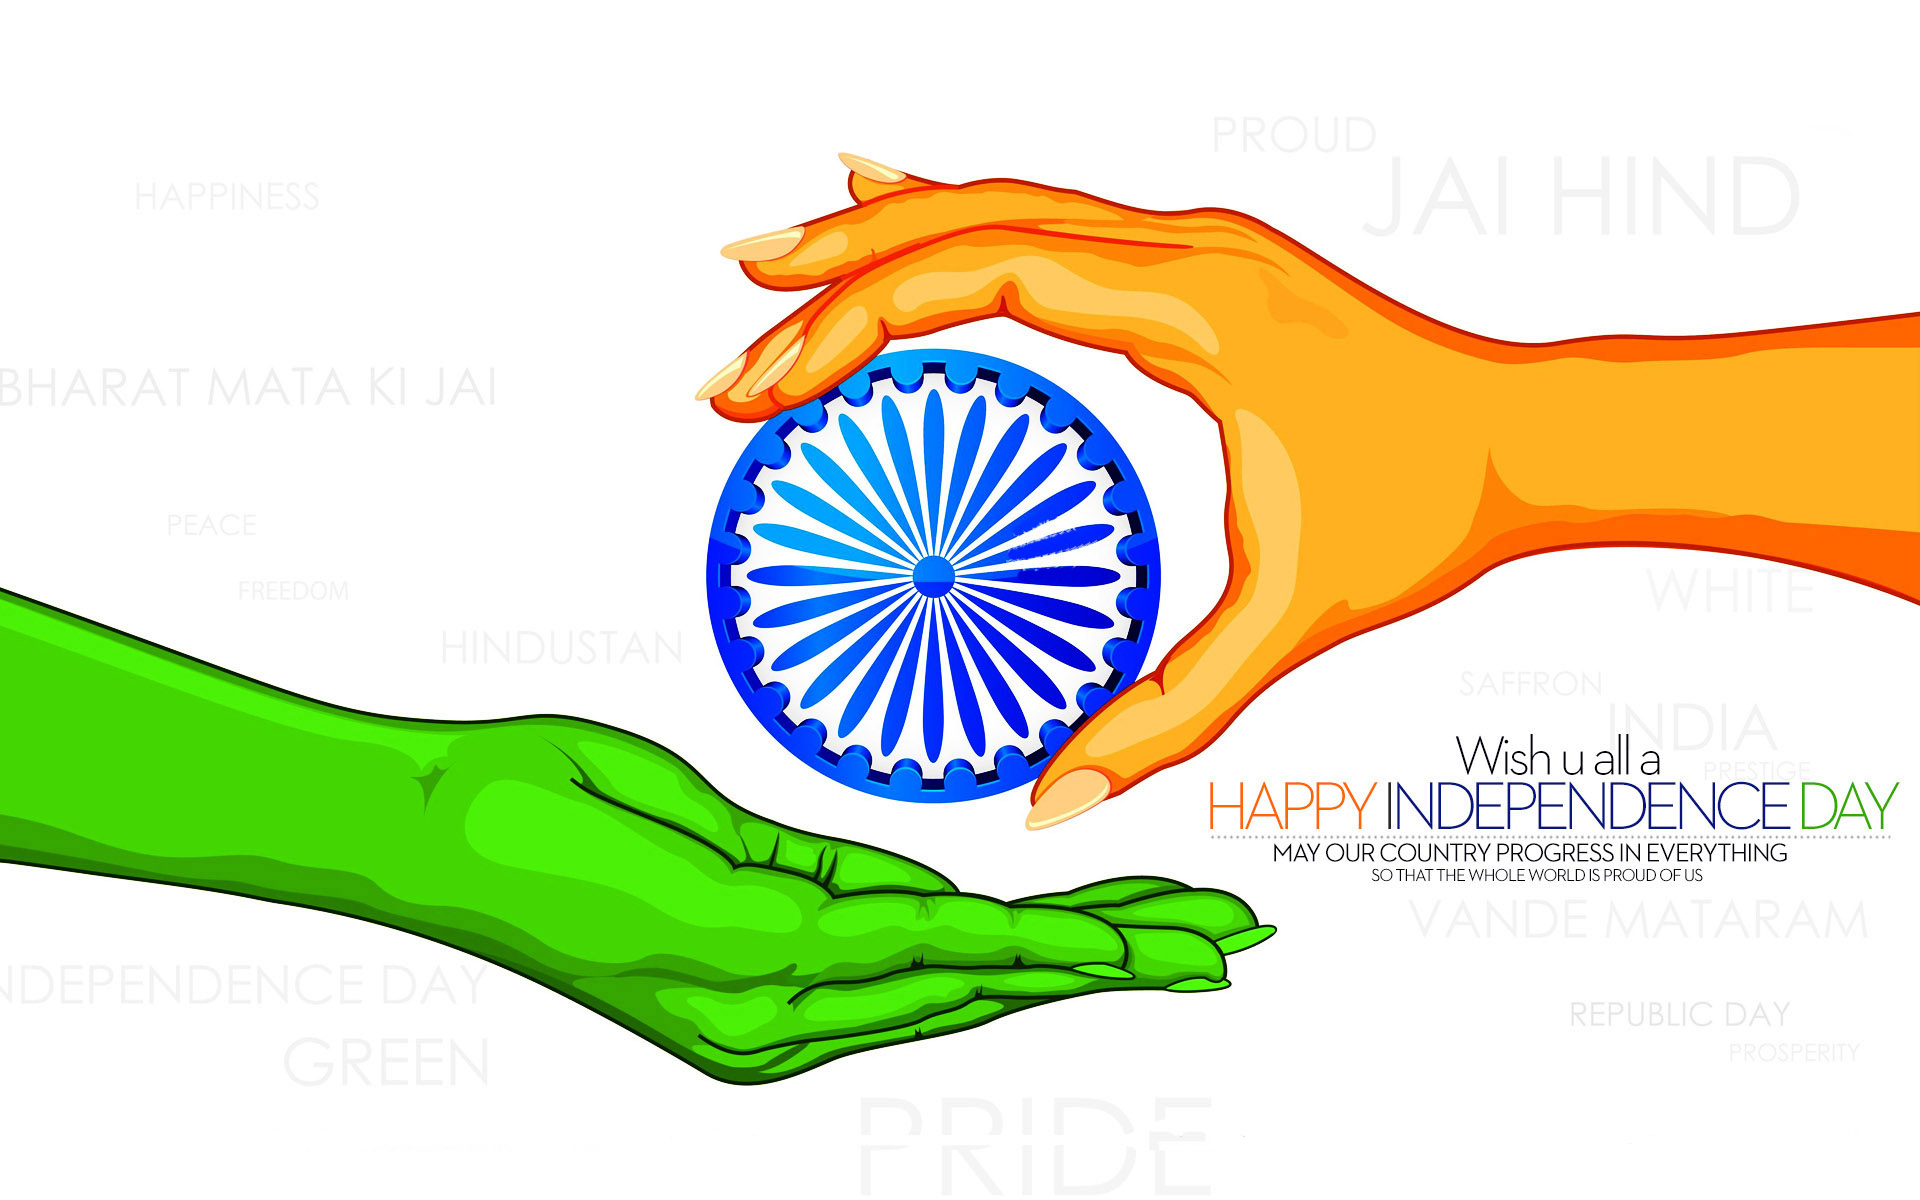 The Best And Most Beautiful Independence Day Images Download Free